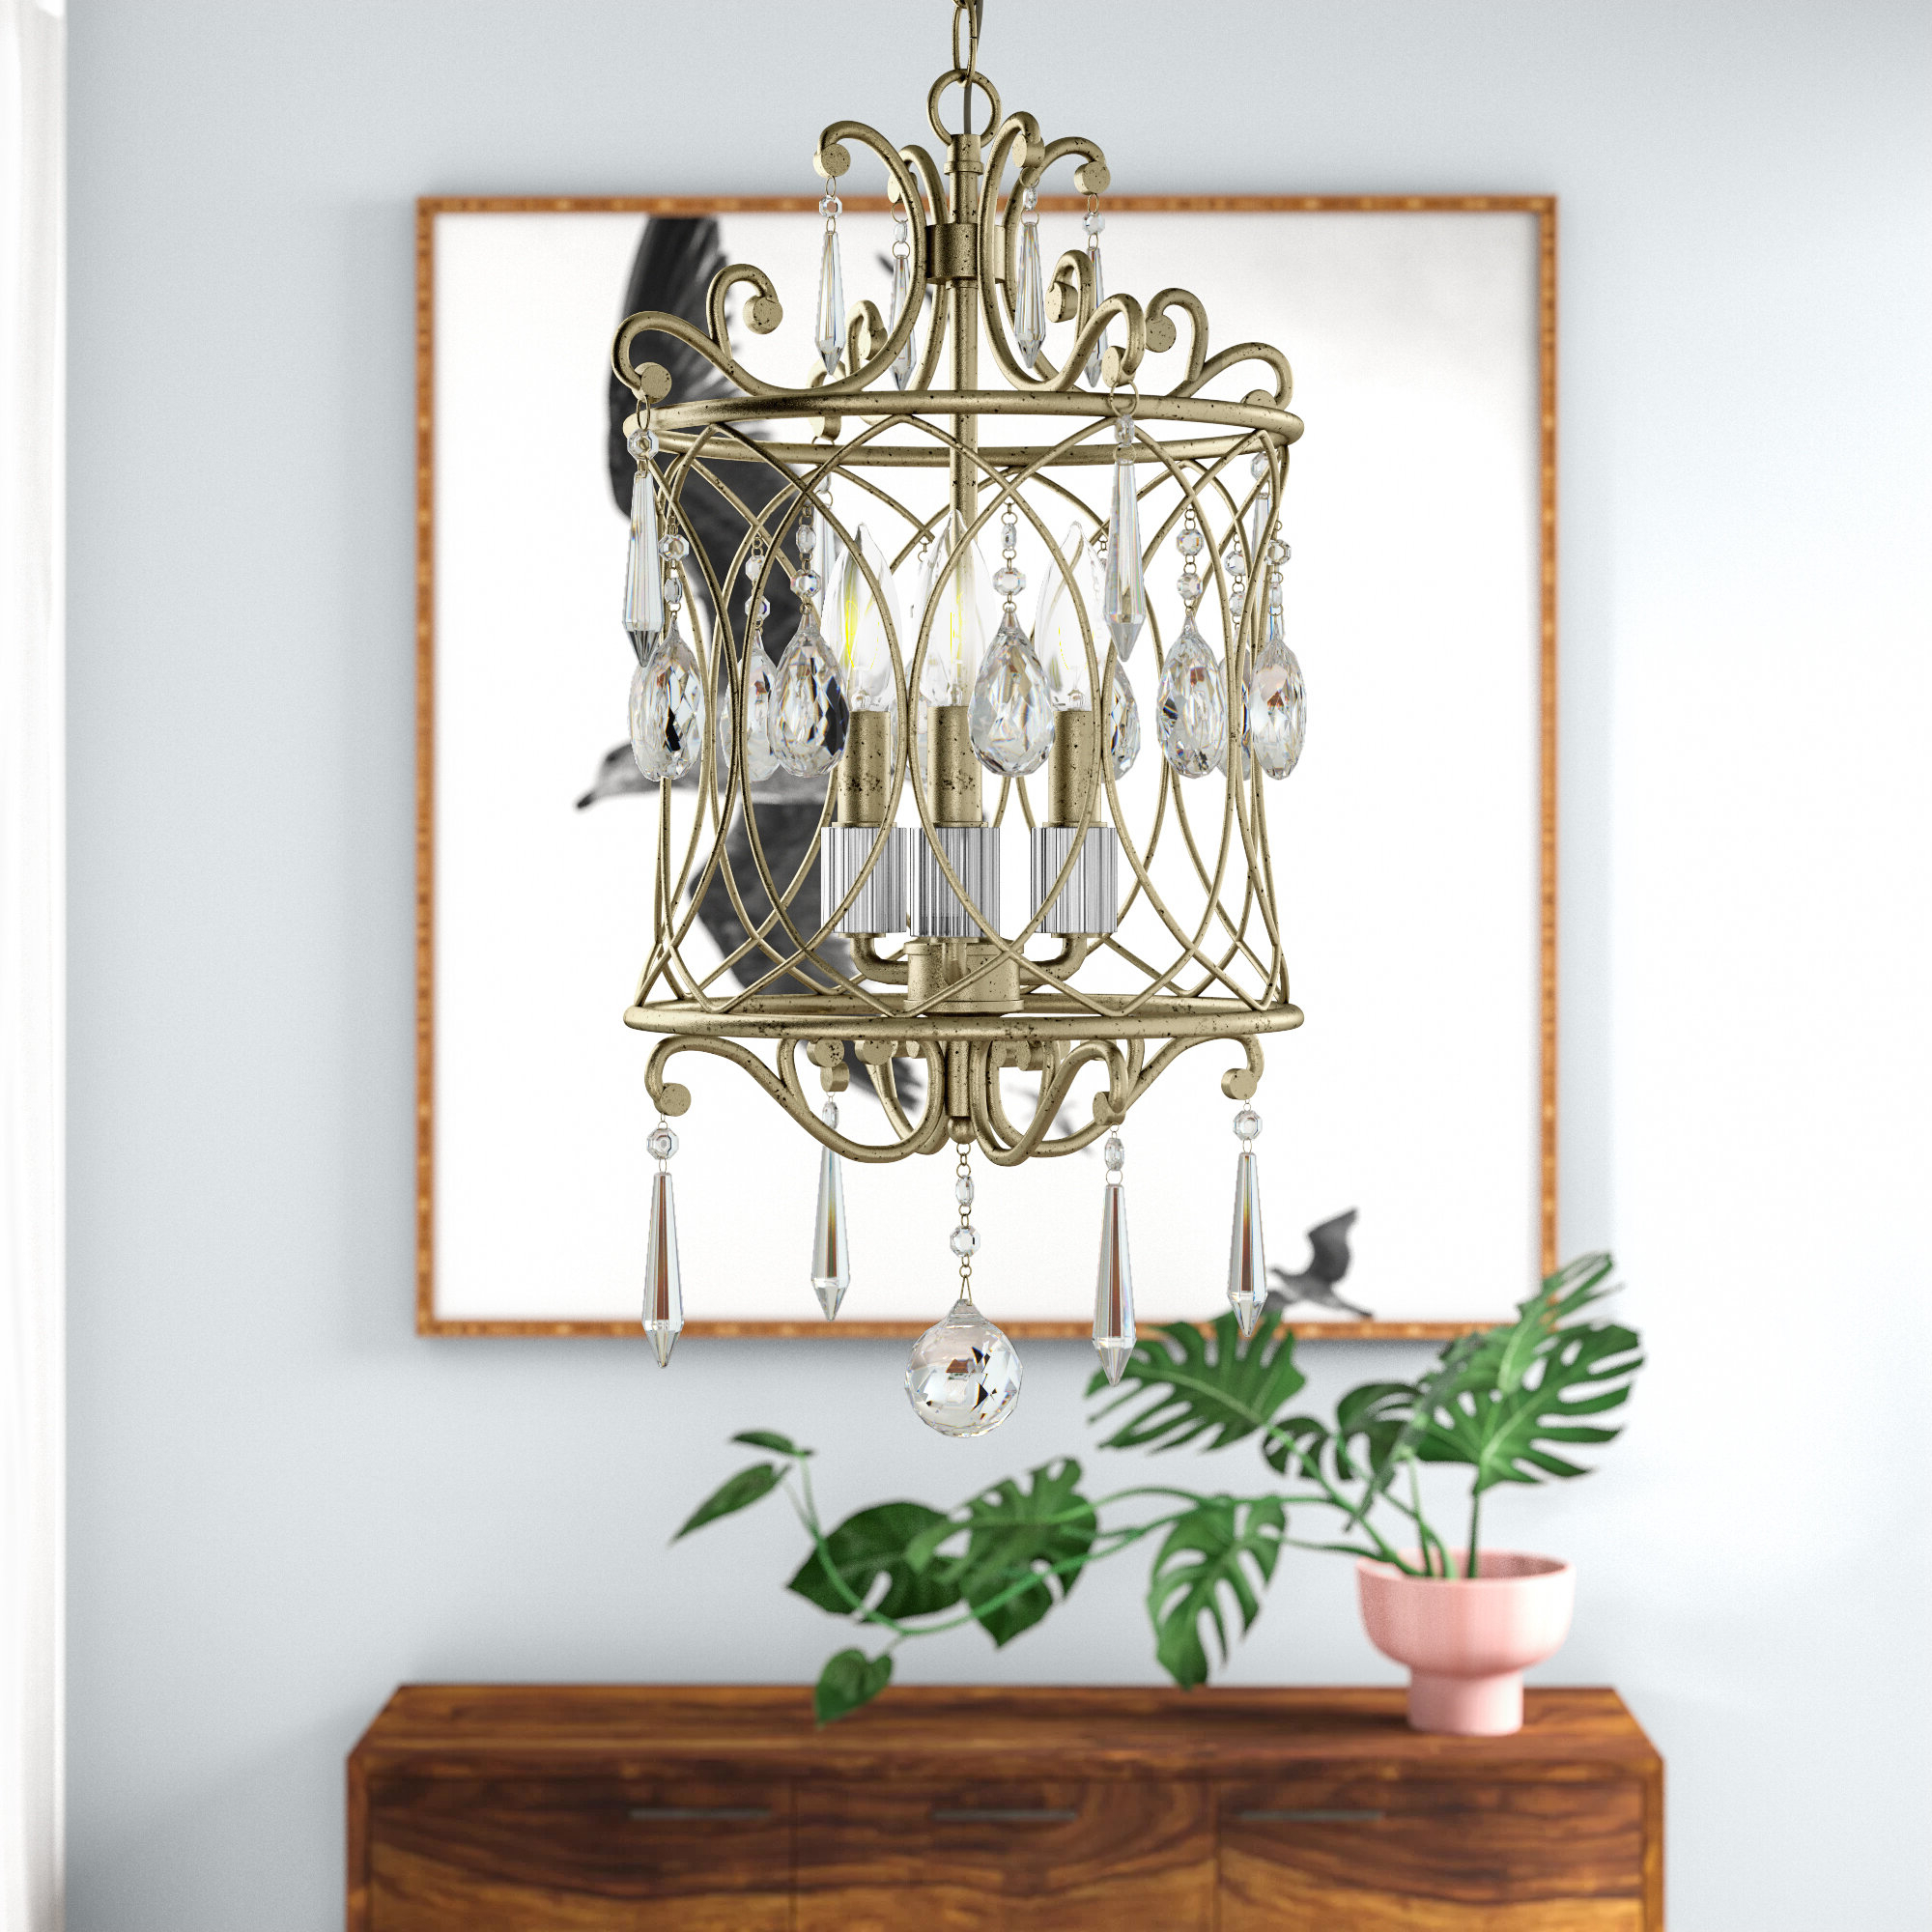 Romane 3-Light Lantern Geometric Pendant in 2019 Dilley 1-Light Unique / Statement Geometric Pendants